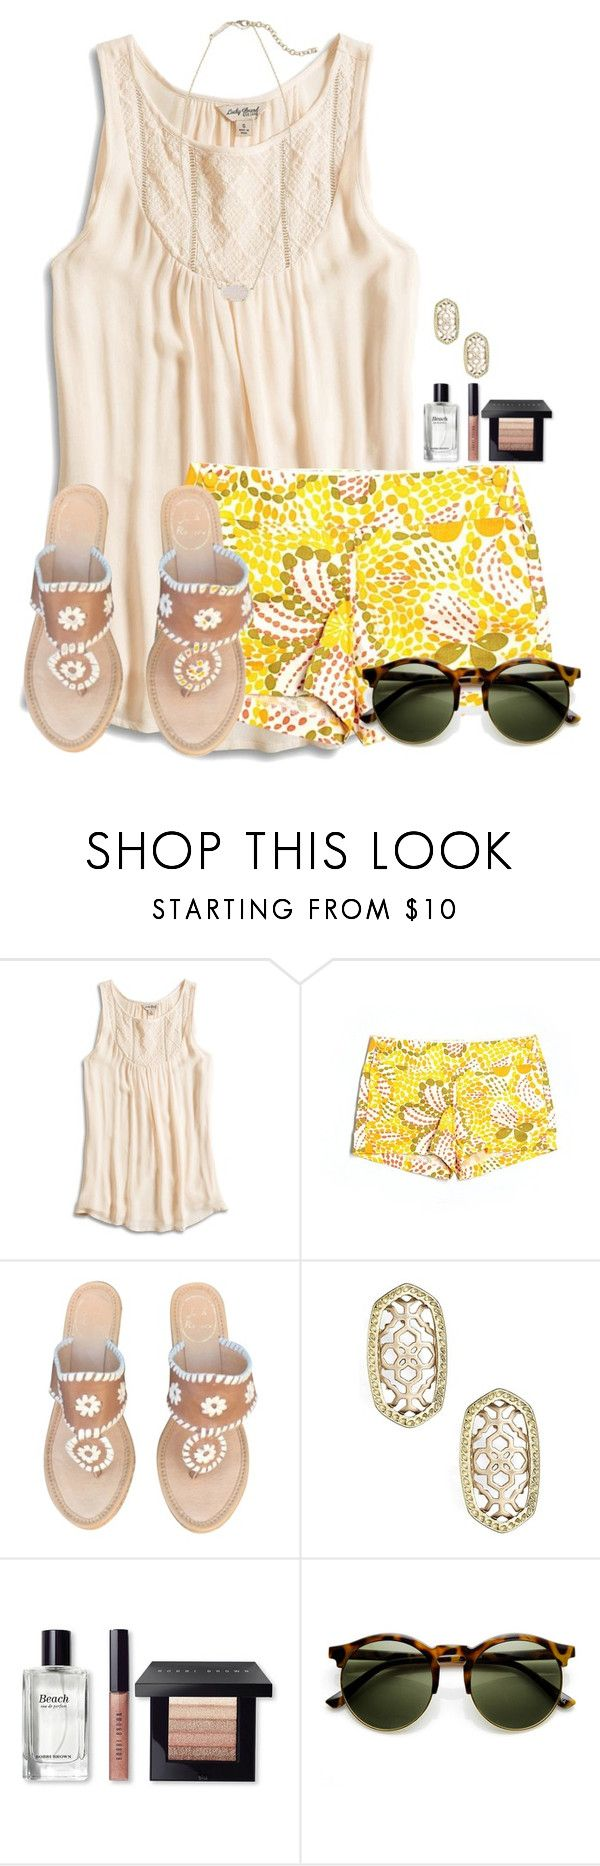 """~Sunshine~"" by flroasburn on Polyvore featuring Lucky Brand, J.Crew, Jack Rogers, Kendra Scott and Bobbi Brown Cosmetics"